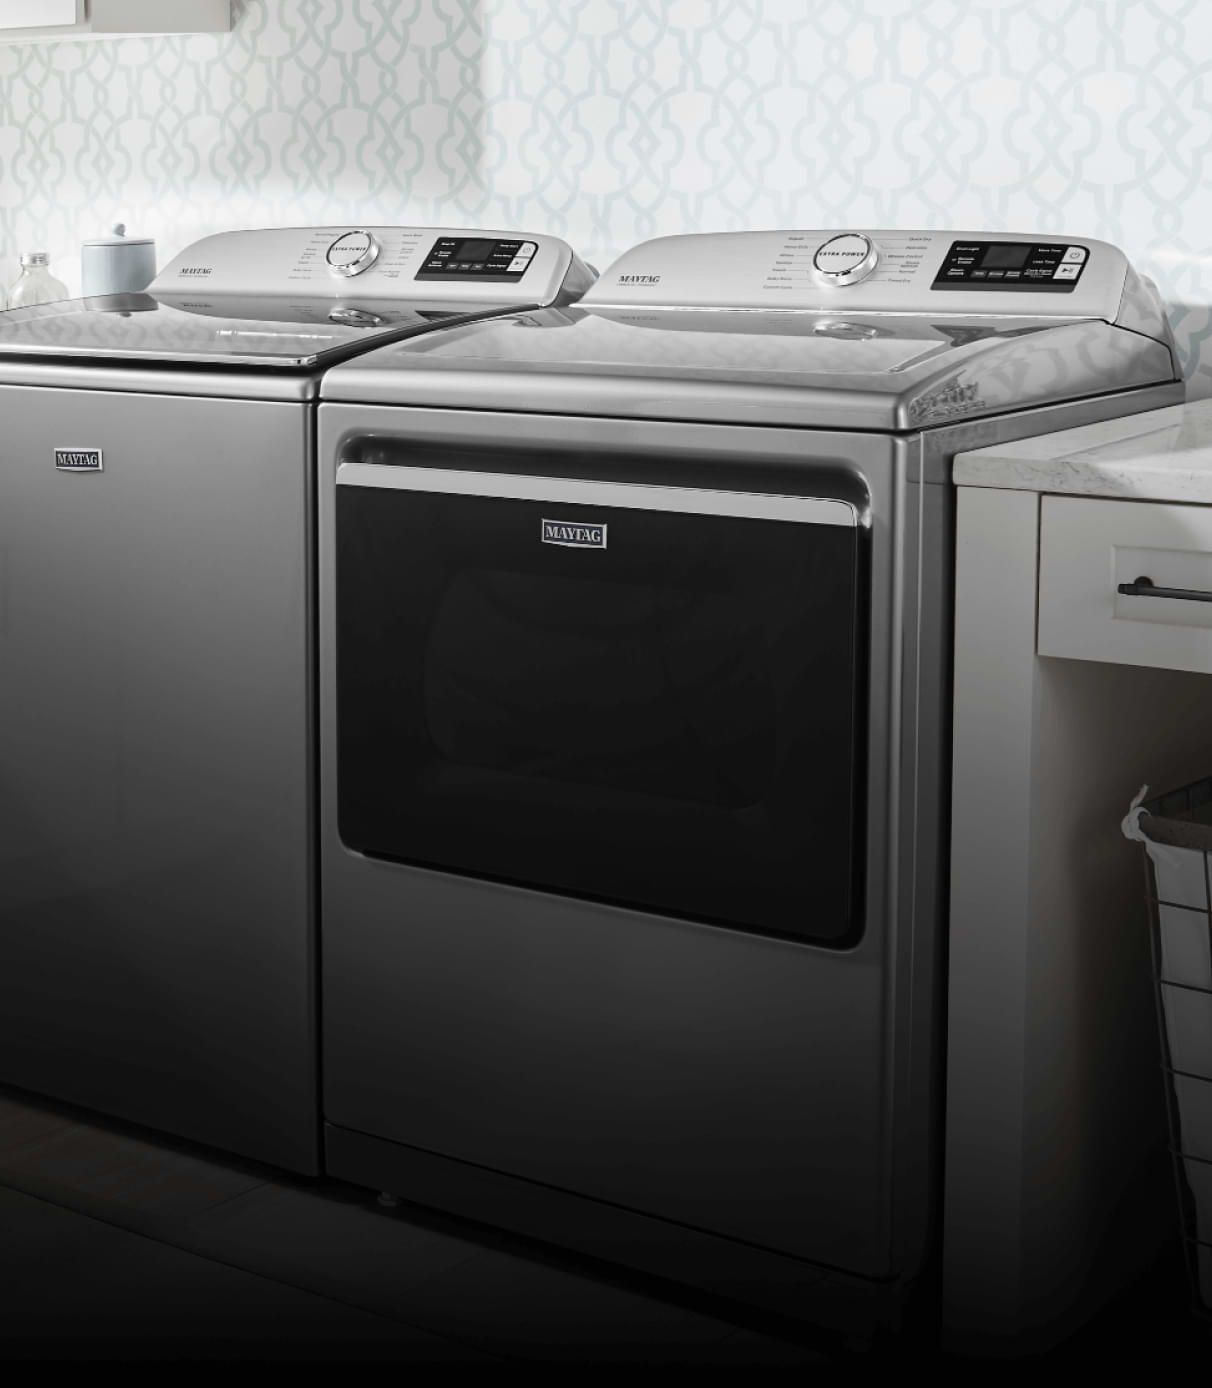 Voice Control to control and monitor your Maytag® connected appliance.